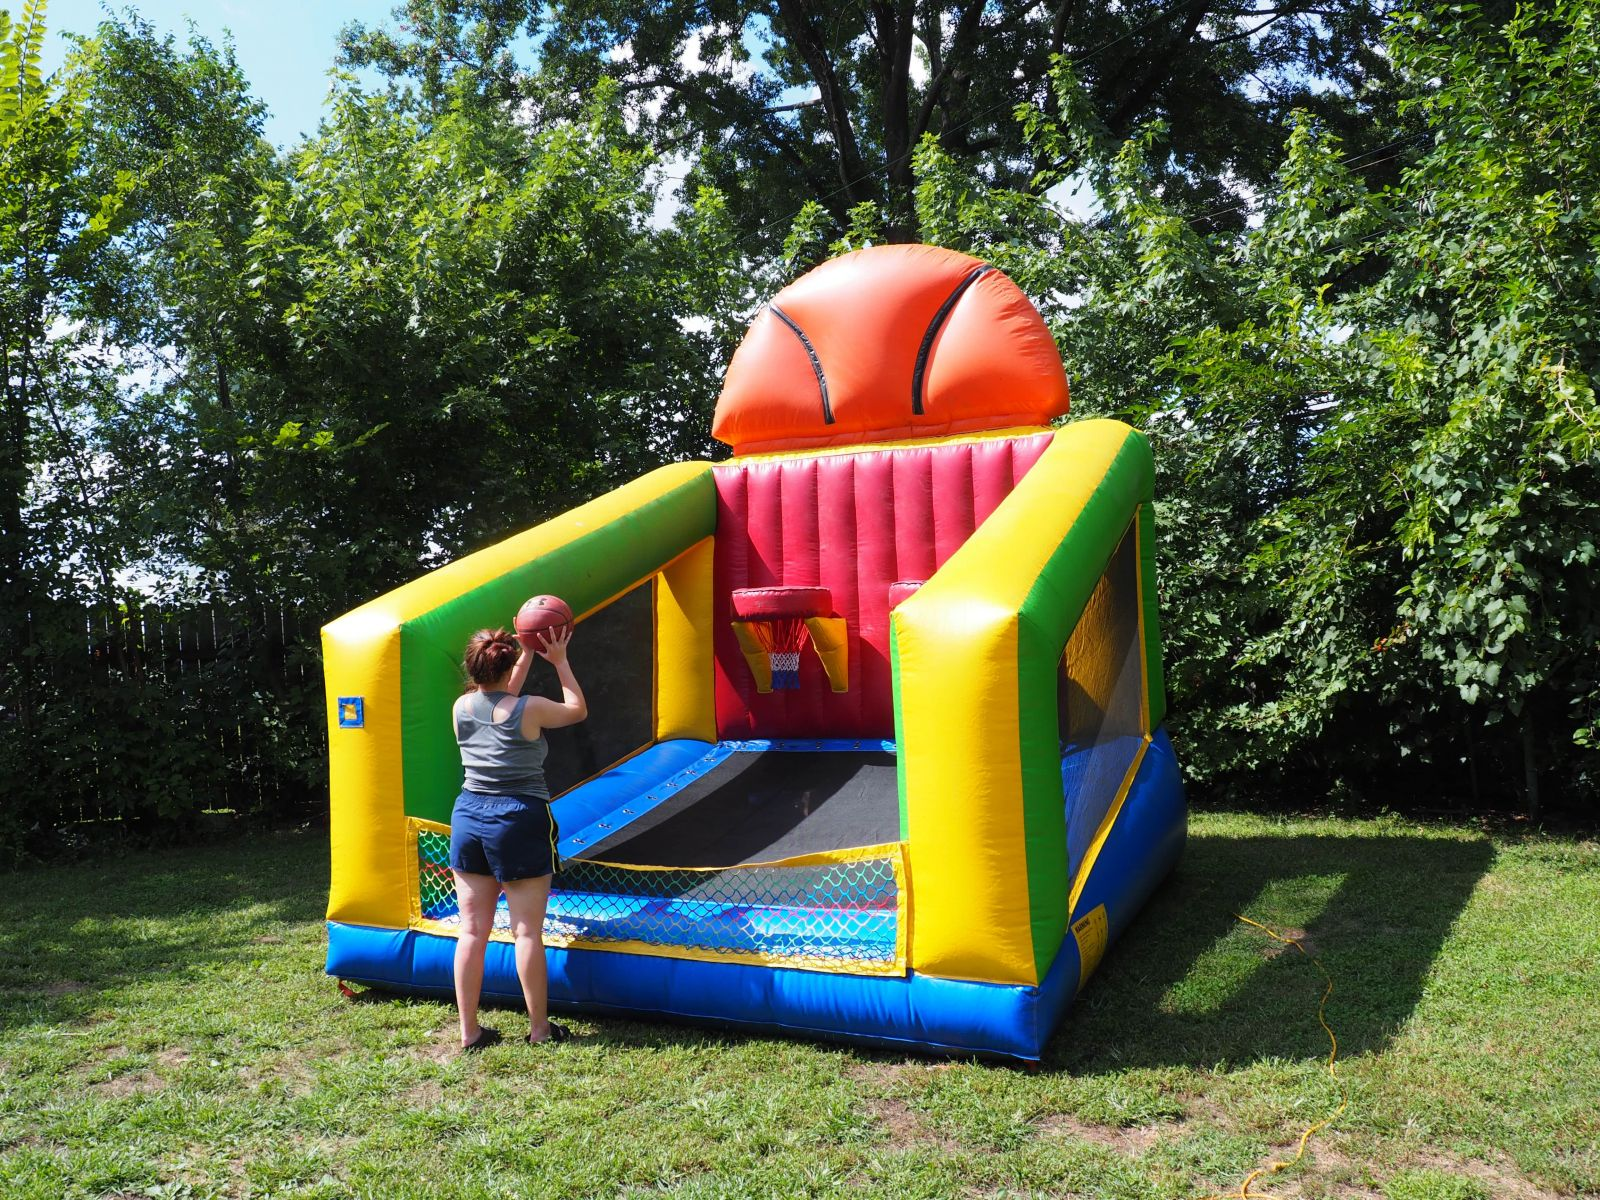 Young girl playing on inflatable basketball hoop game.